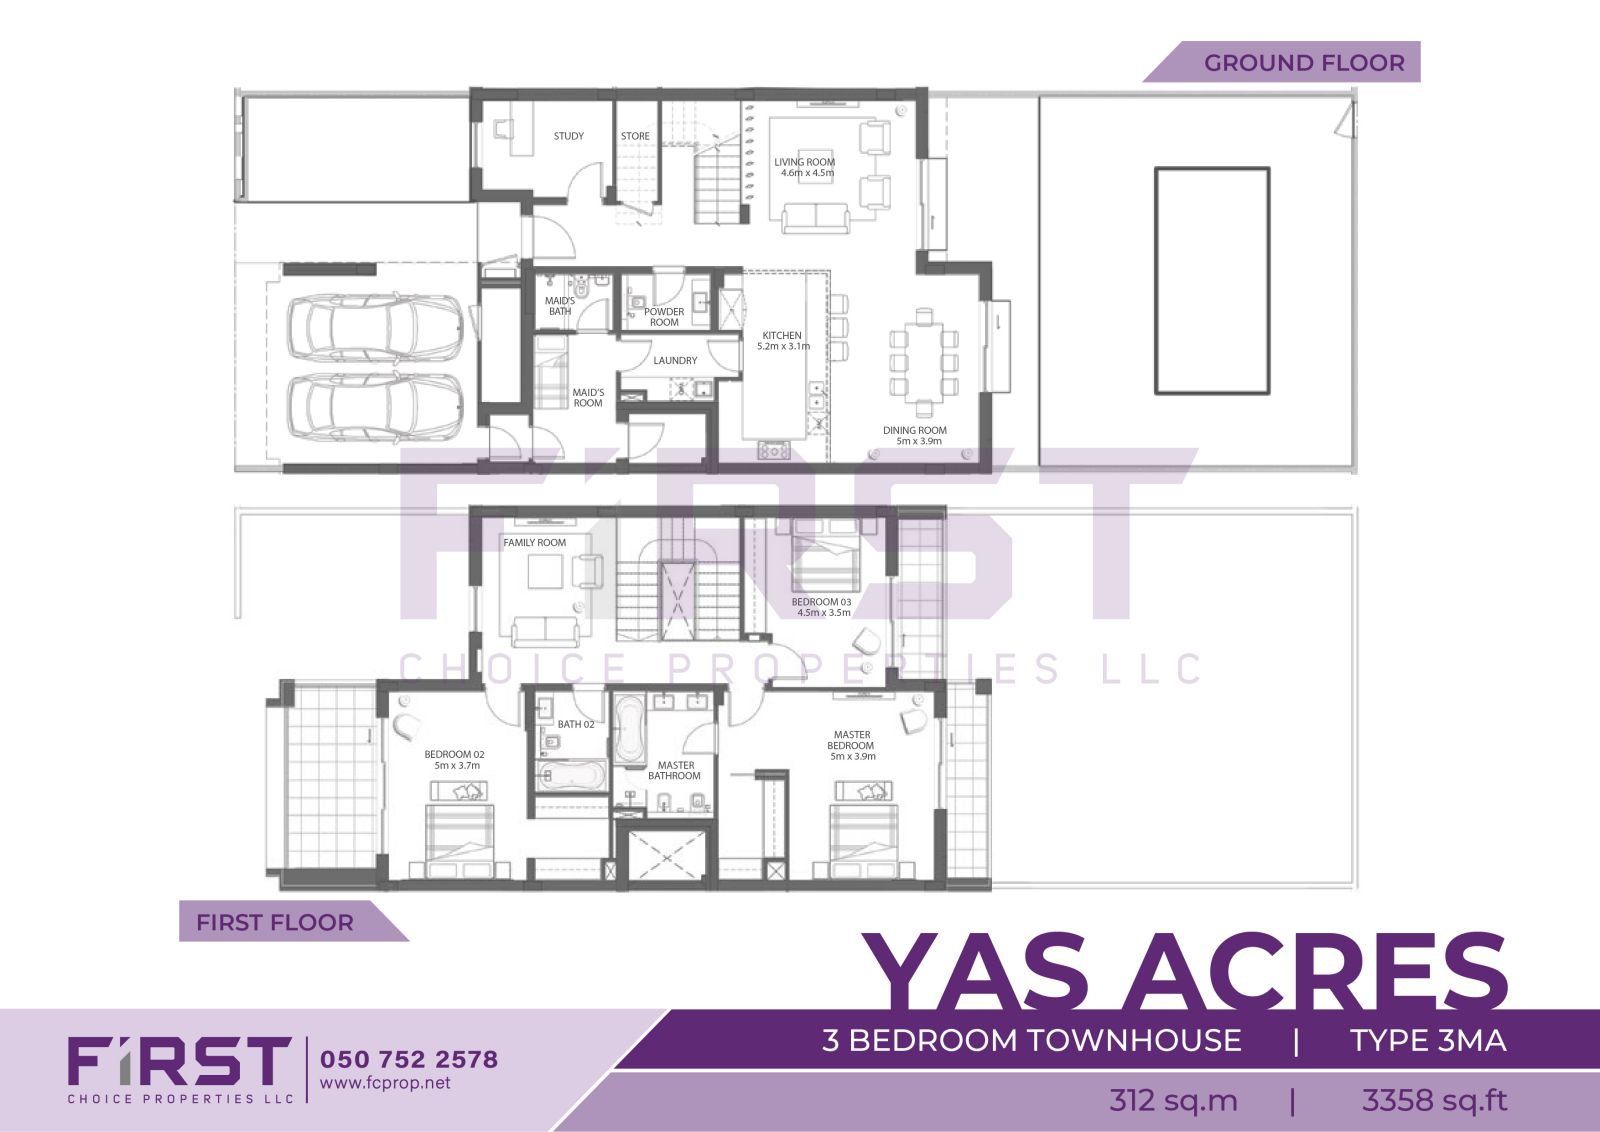 Floor Plan of 3 Bedroom Townhouse Type 3MA in Yas Acres Yas Island Abu Dhabi UAE 312 sq.m 3358 sq.ft.jpg